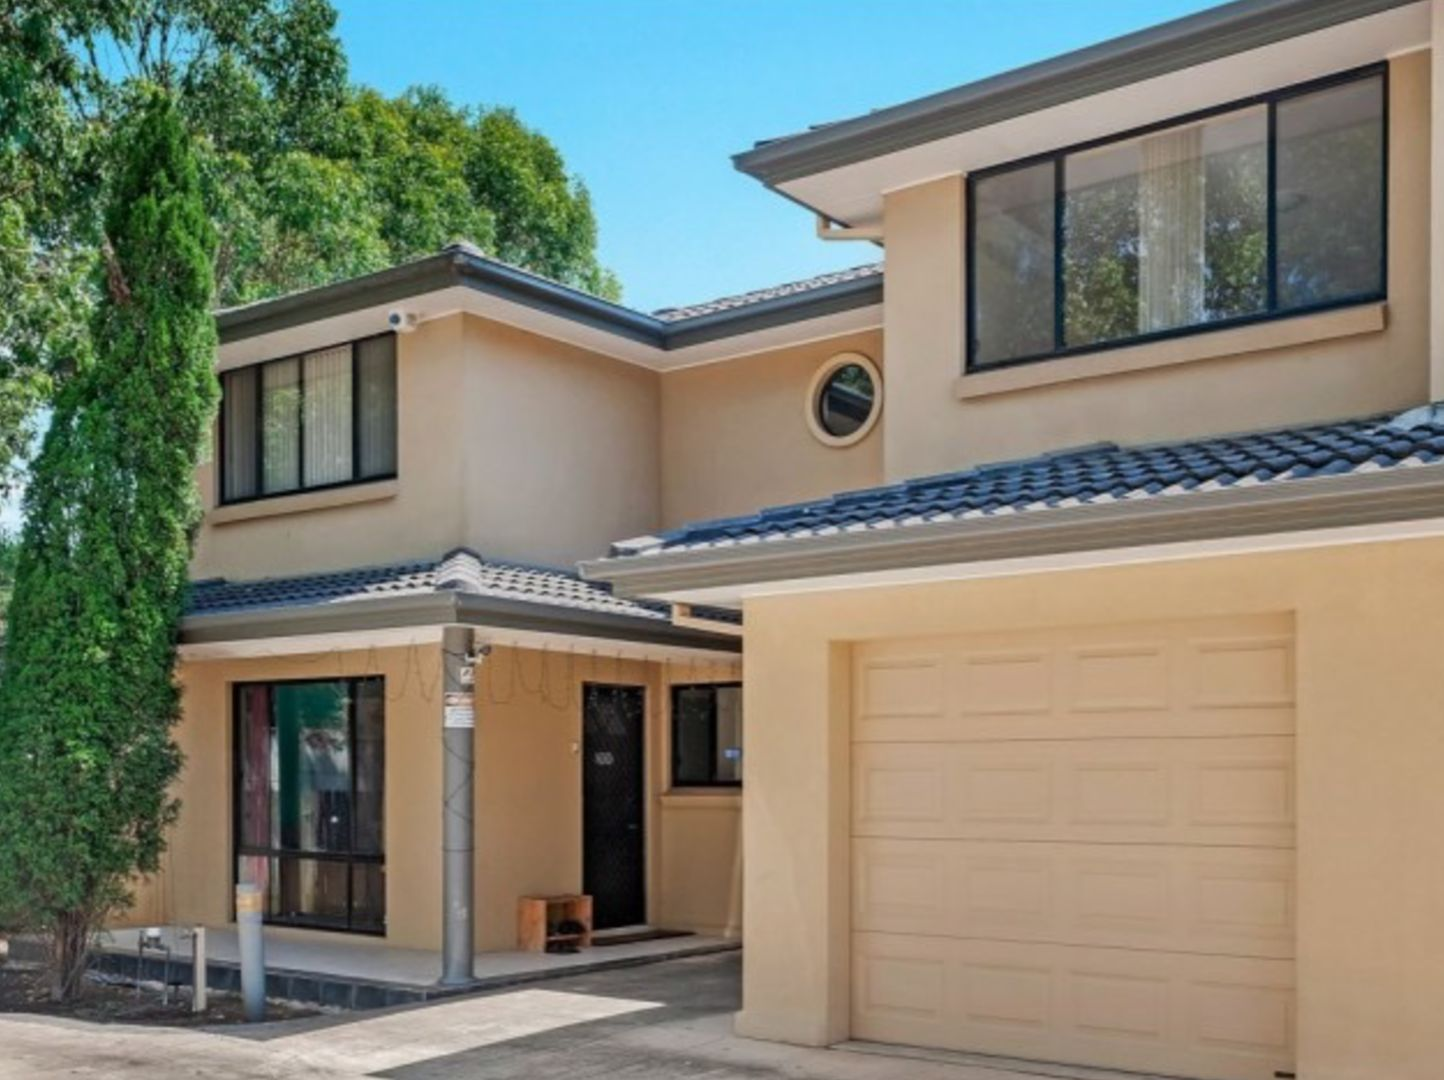 7/32-34 DOUGLAS ROAD, Quakers Hill NSW 2763, Image 0